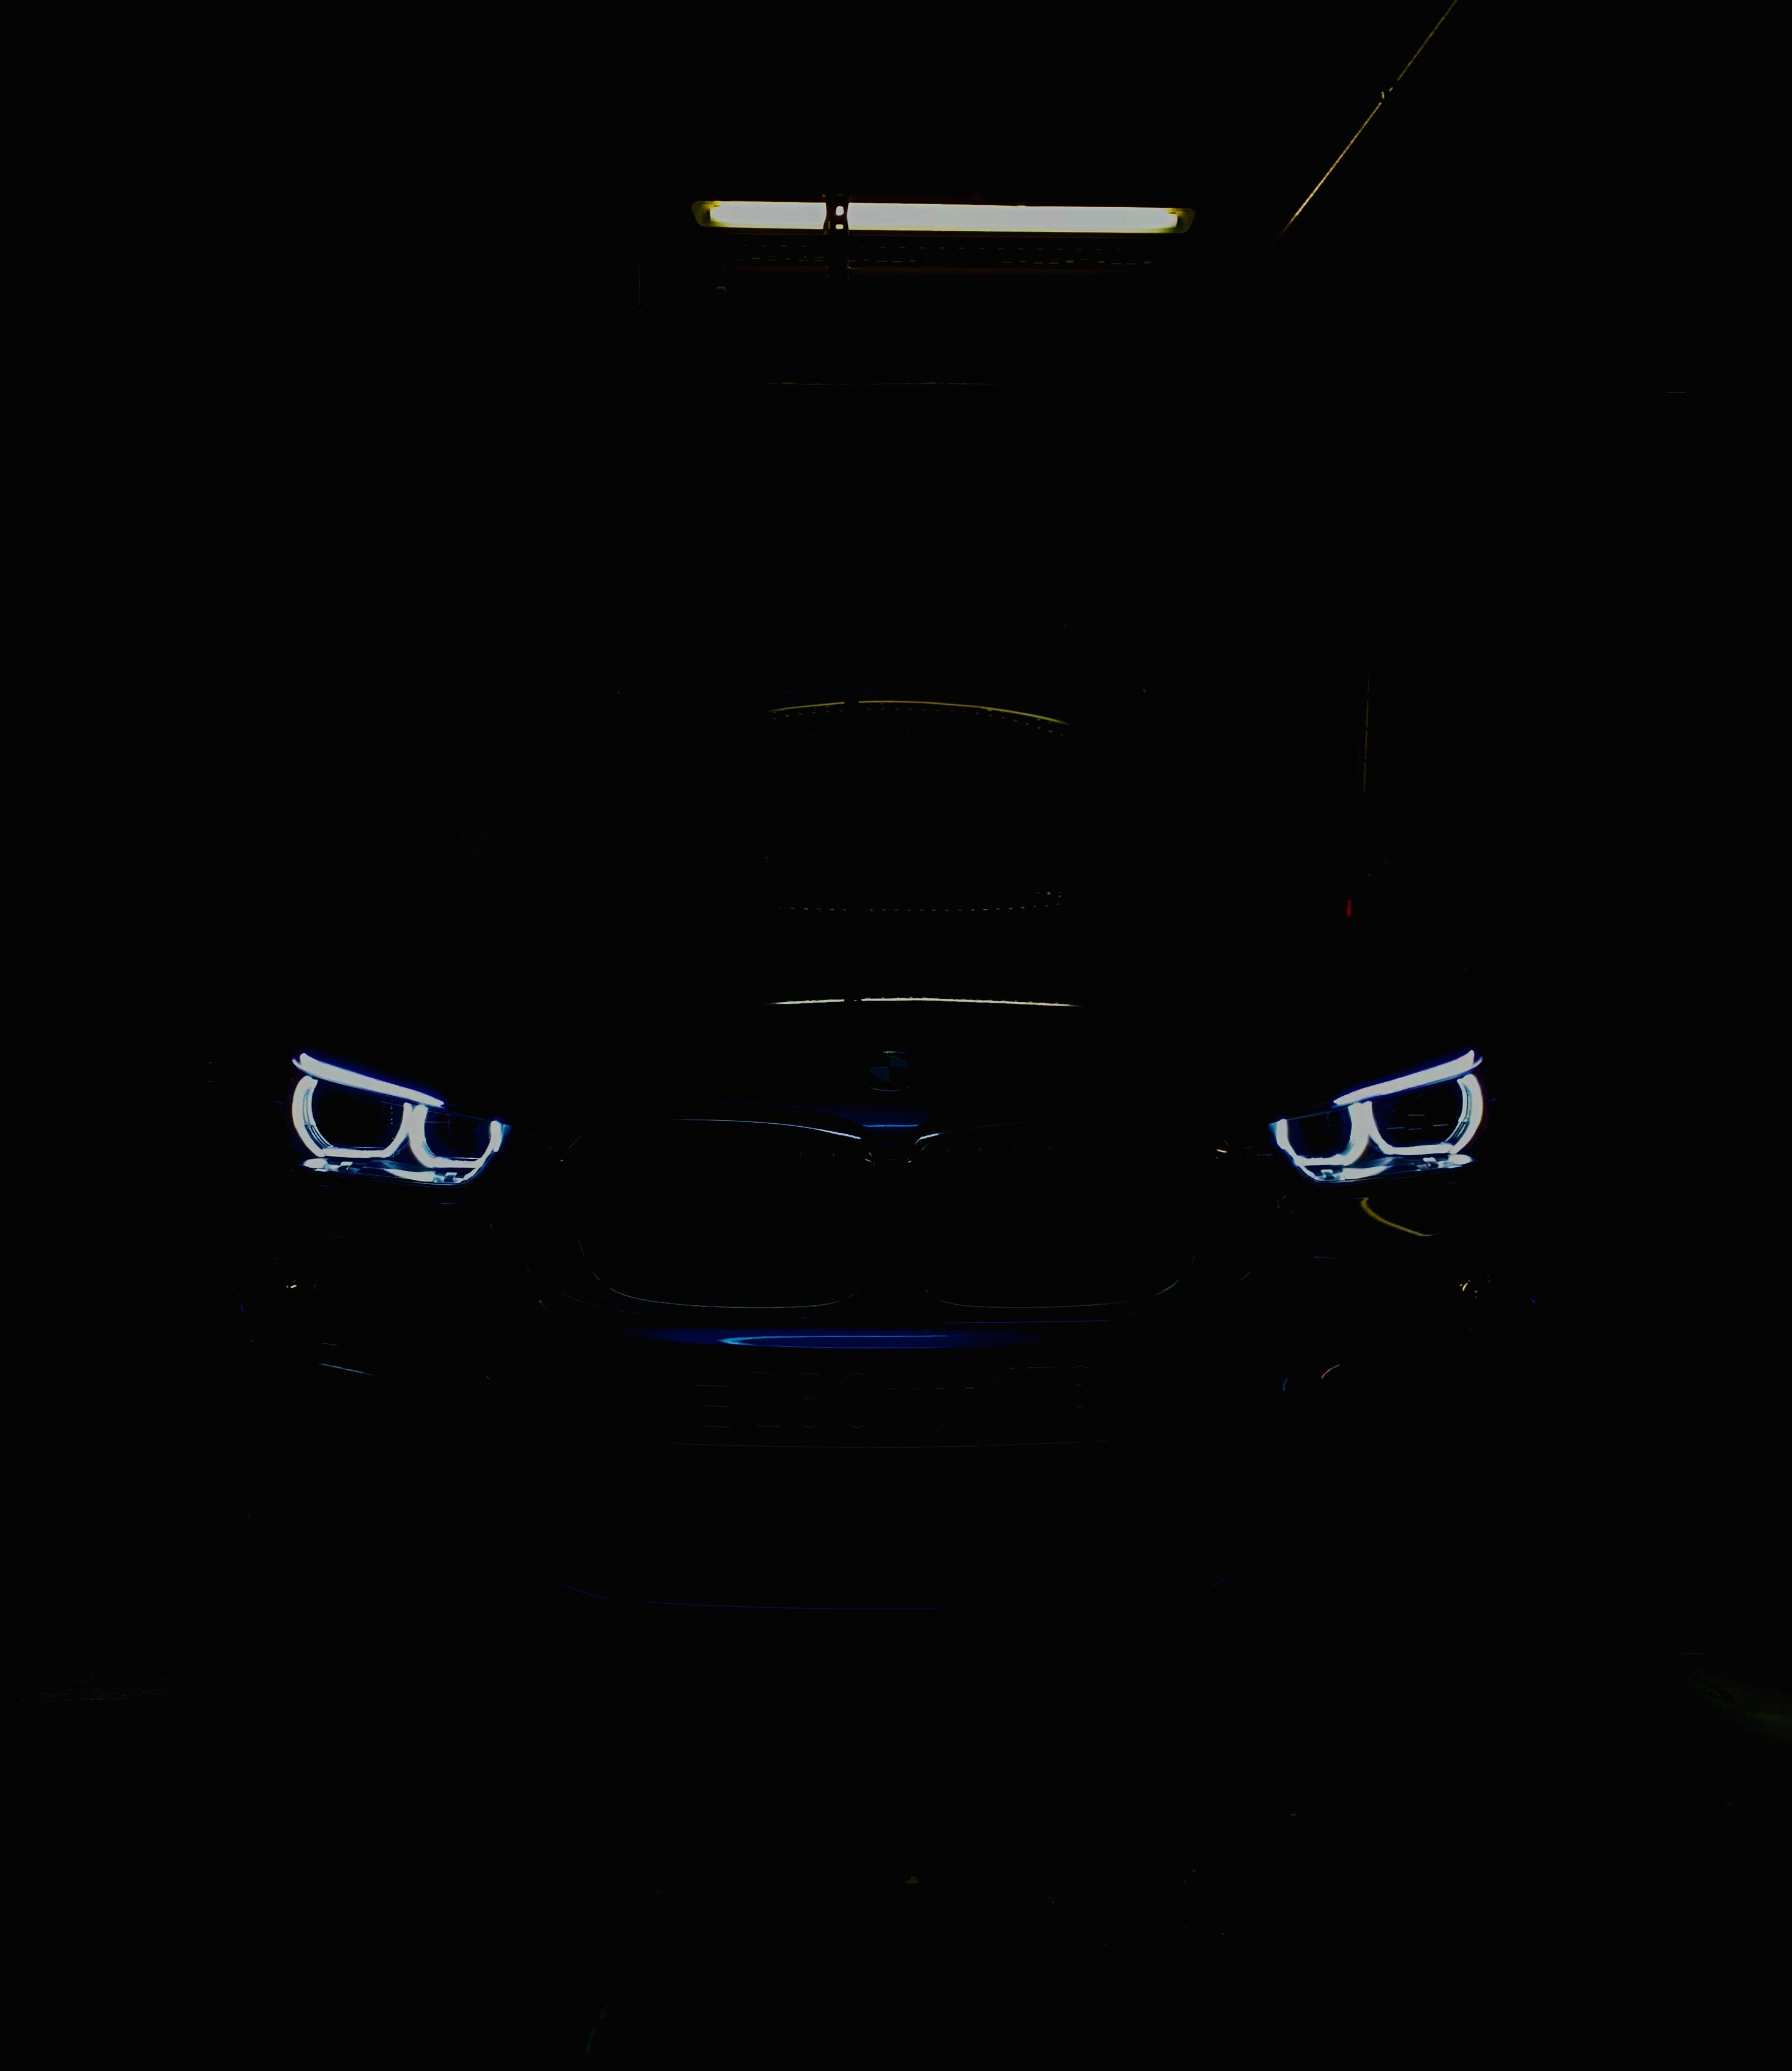 Black Car In The Dark With Lighted Daytime Running Lights Photo Free Logo Image On Unsplash